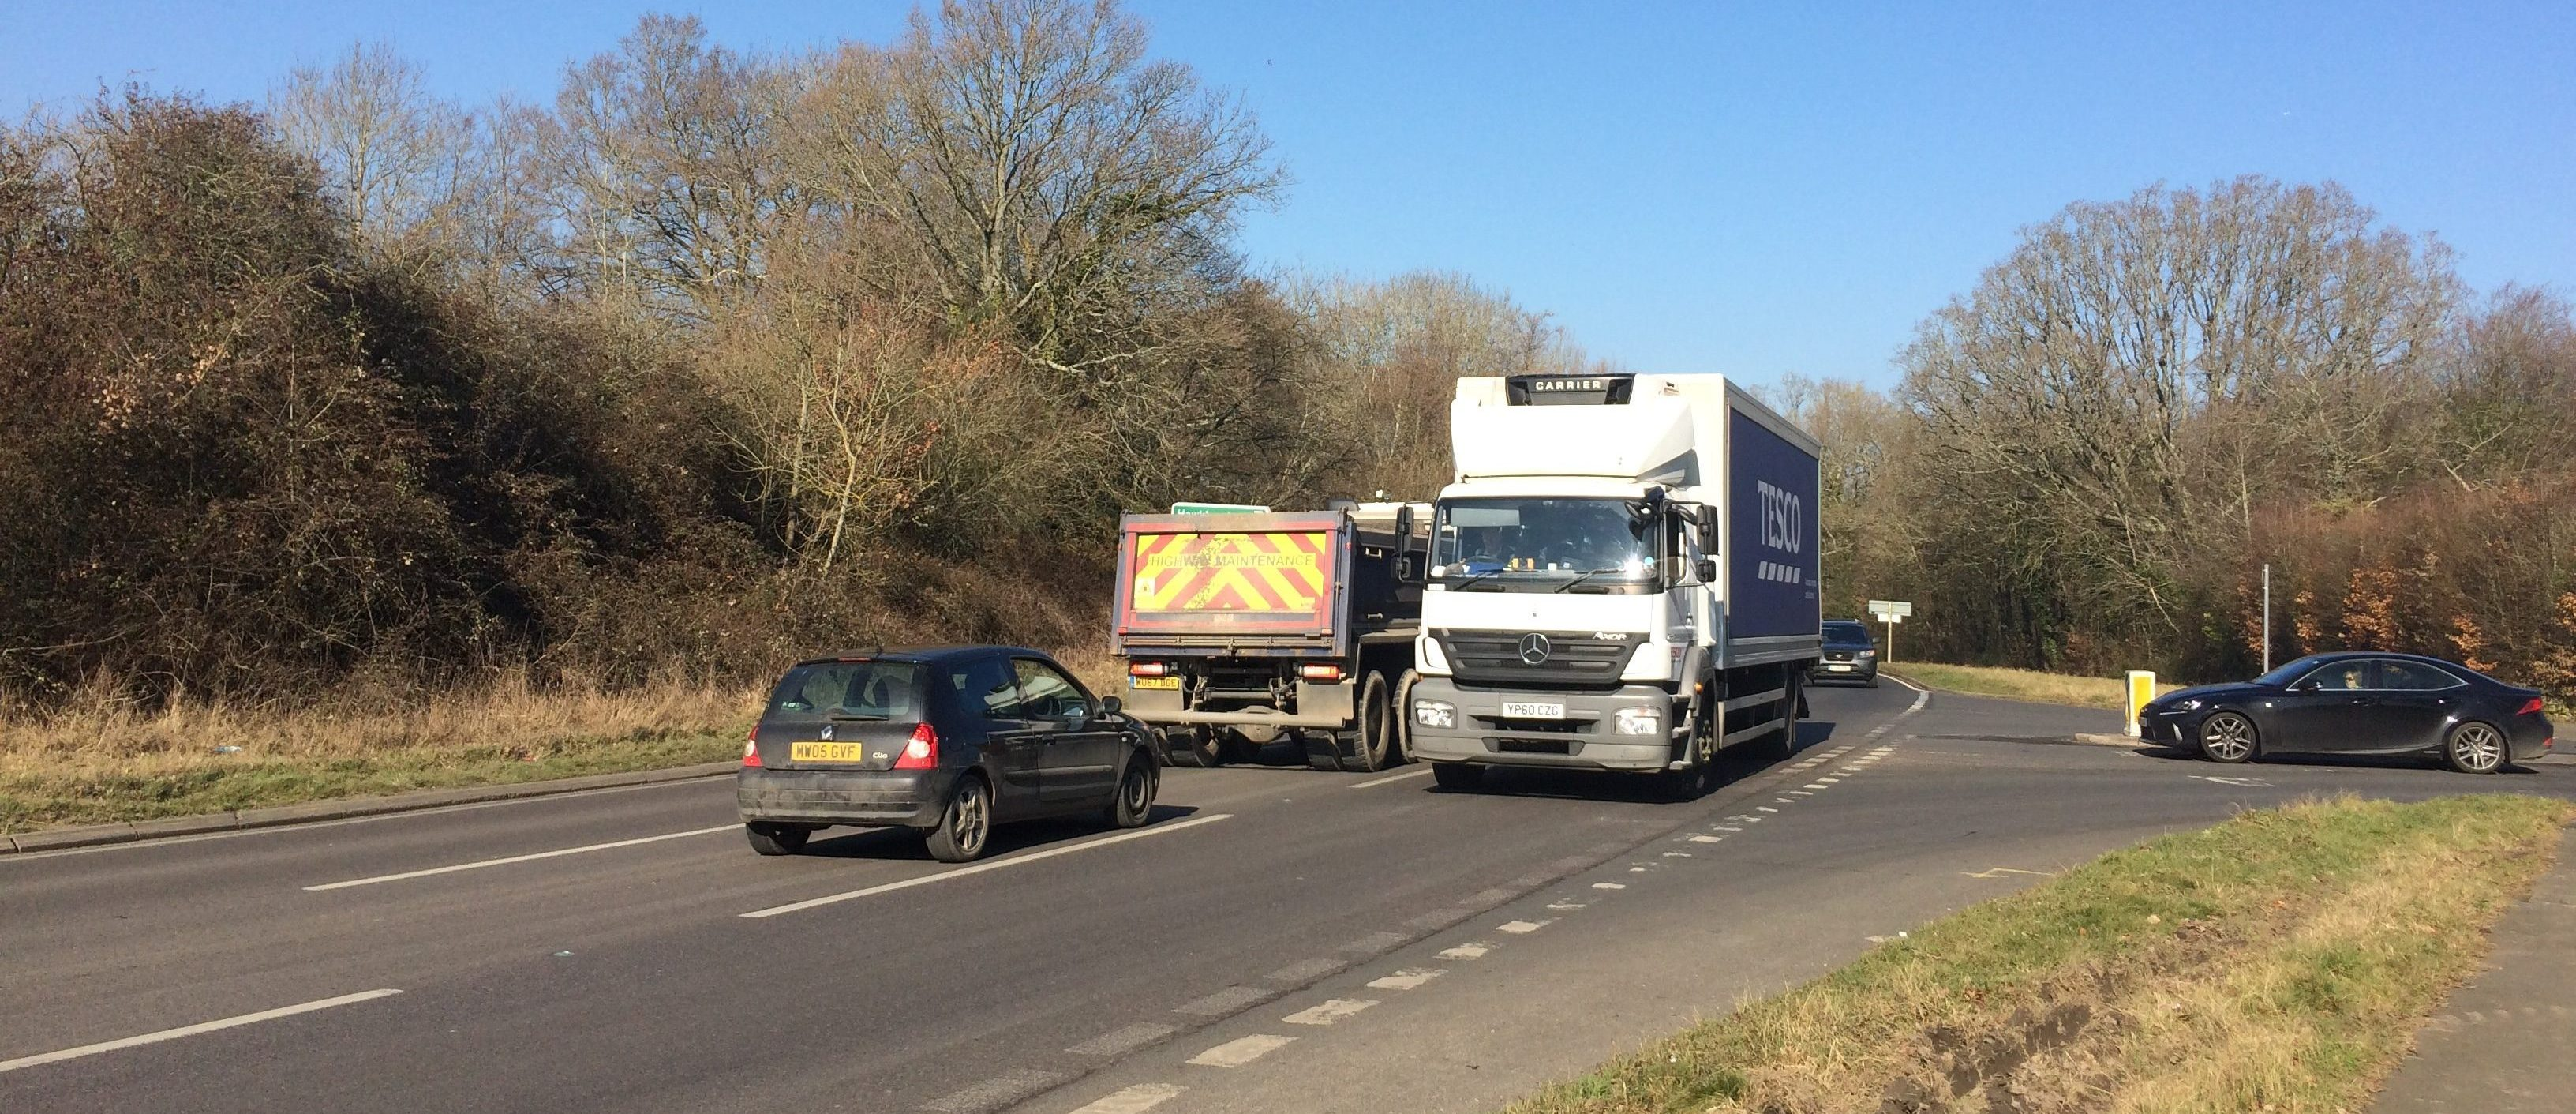 image of heavy traffic at Coopers Corner on the A21